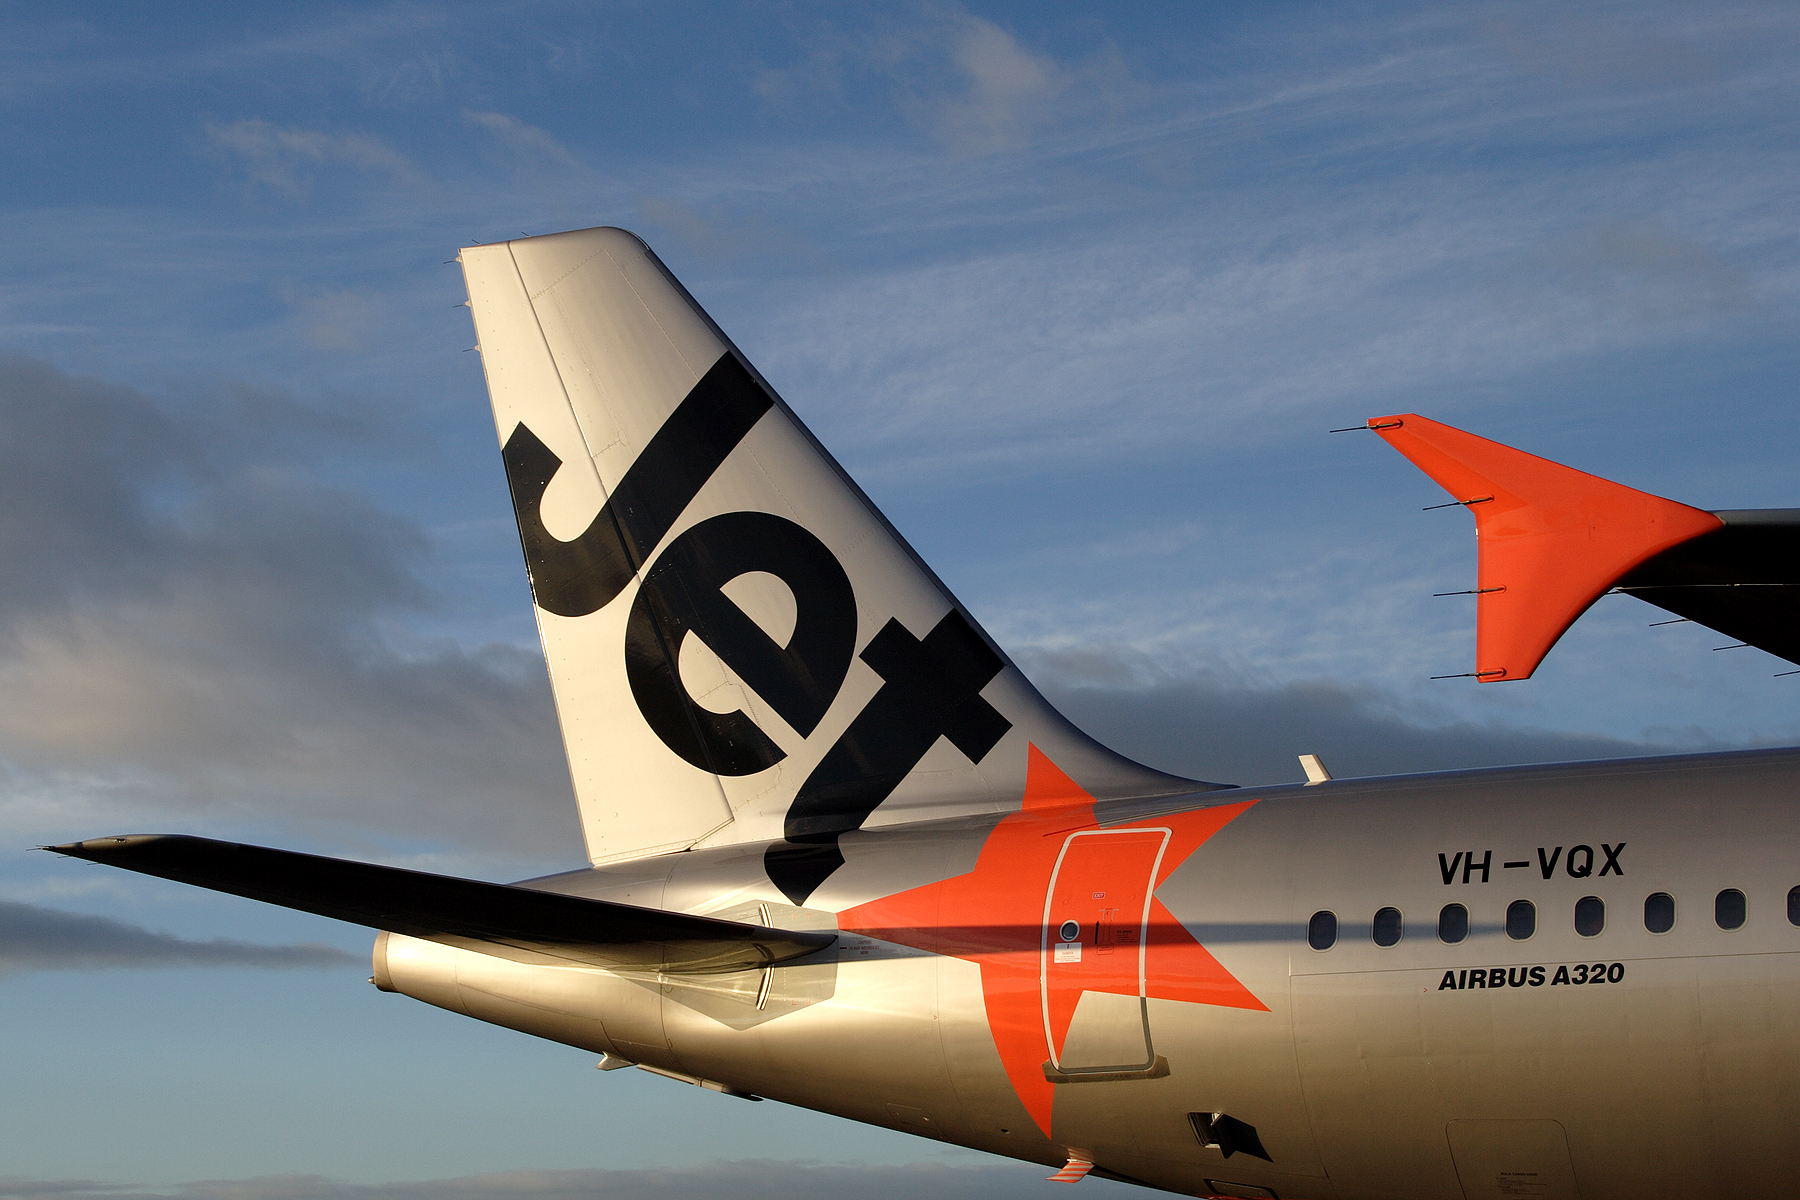 jetstar_airbus_a320_tail_6768111915-1